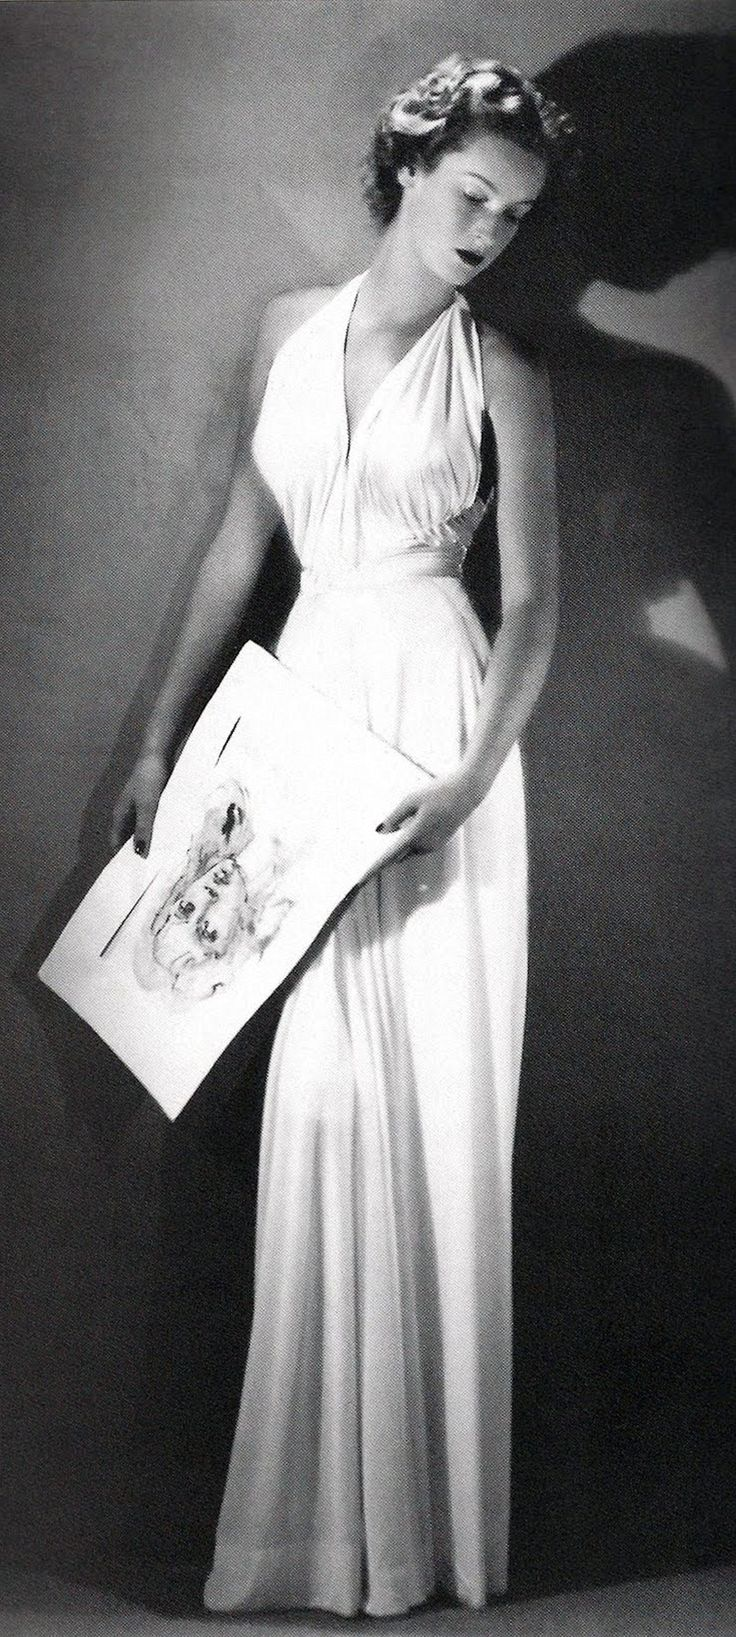 1940's fashion - Marella Caracciolo Agnelli, in Federico Forquet, 1945, Vogue, Photo by Arturo Ghergo